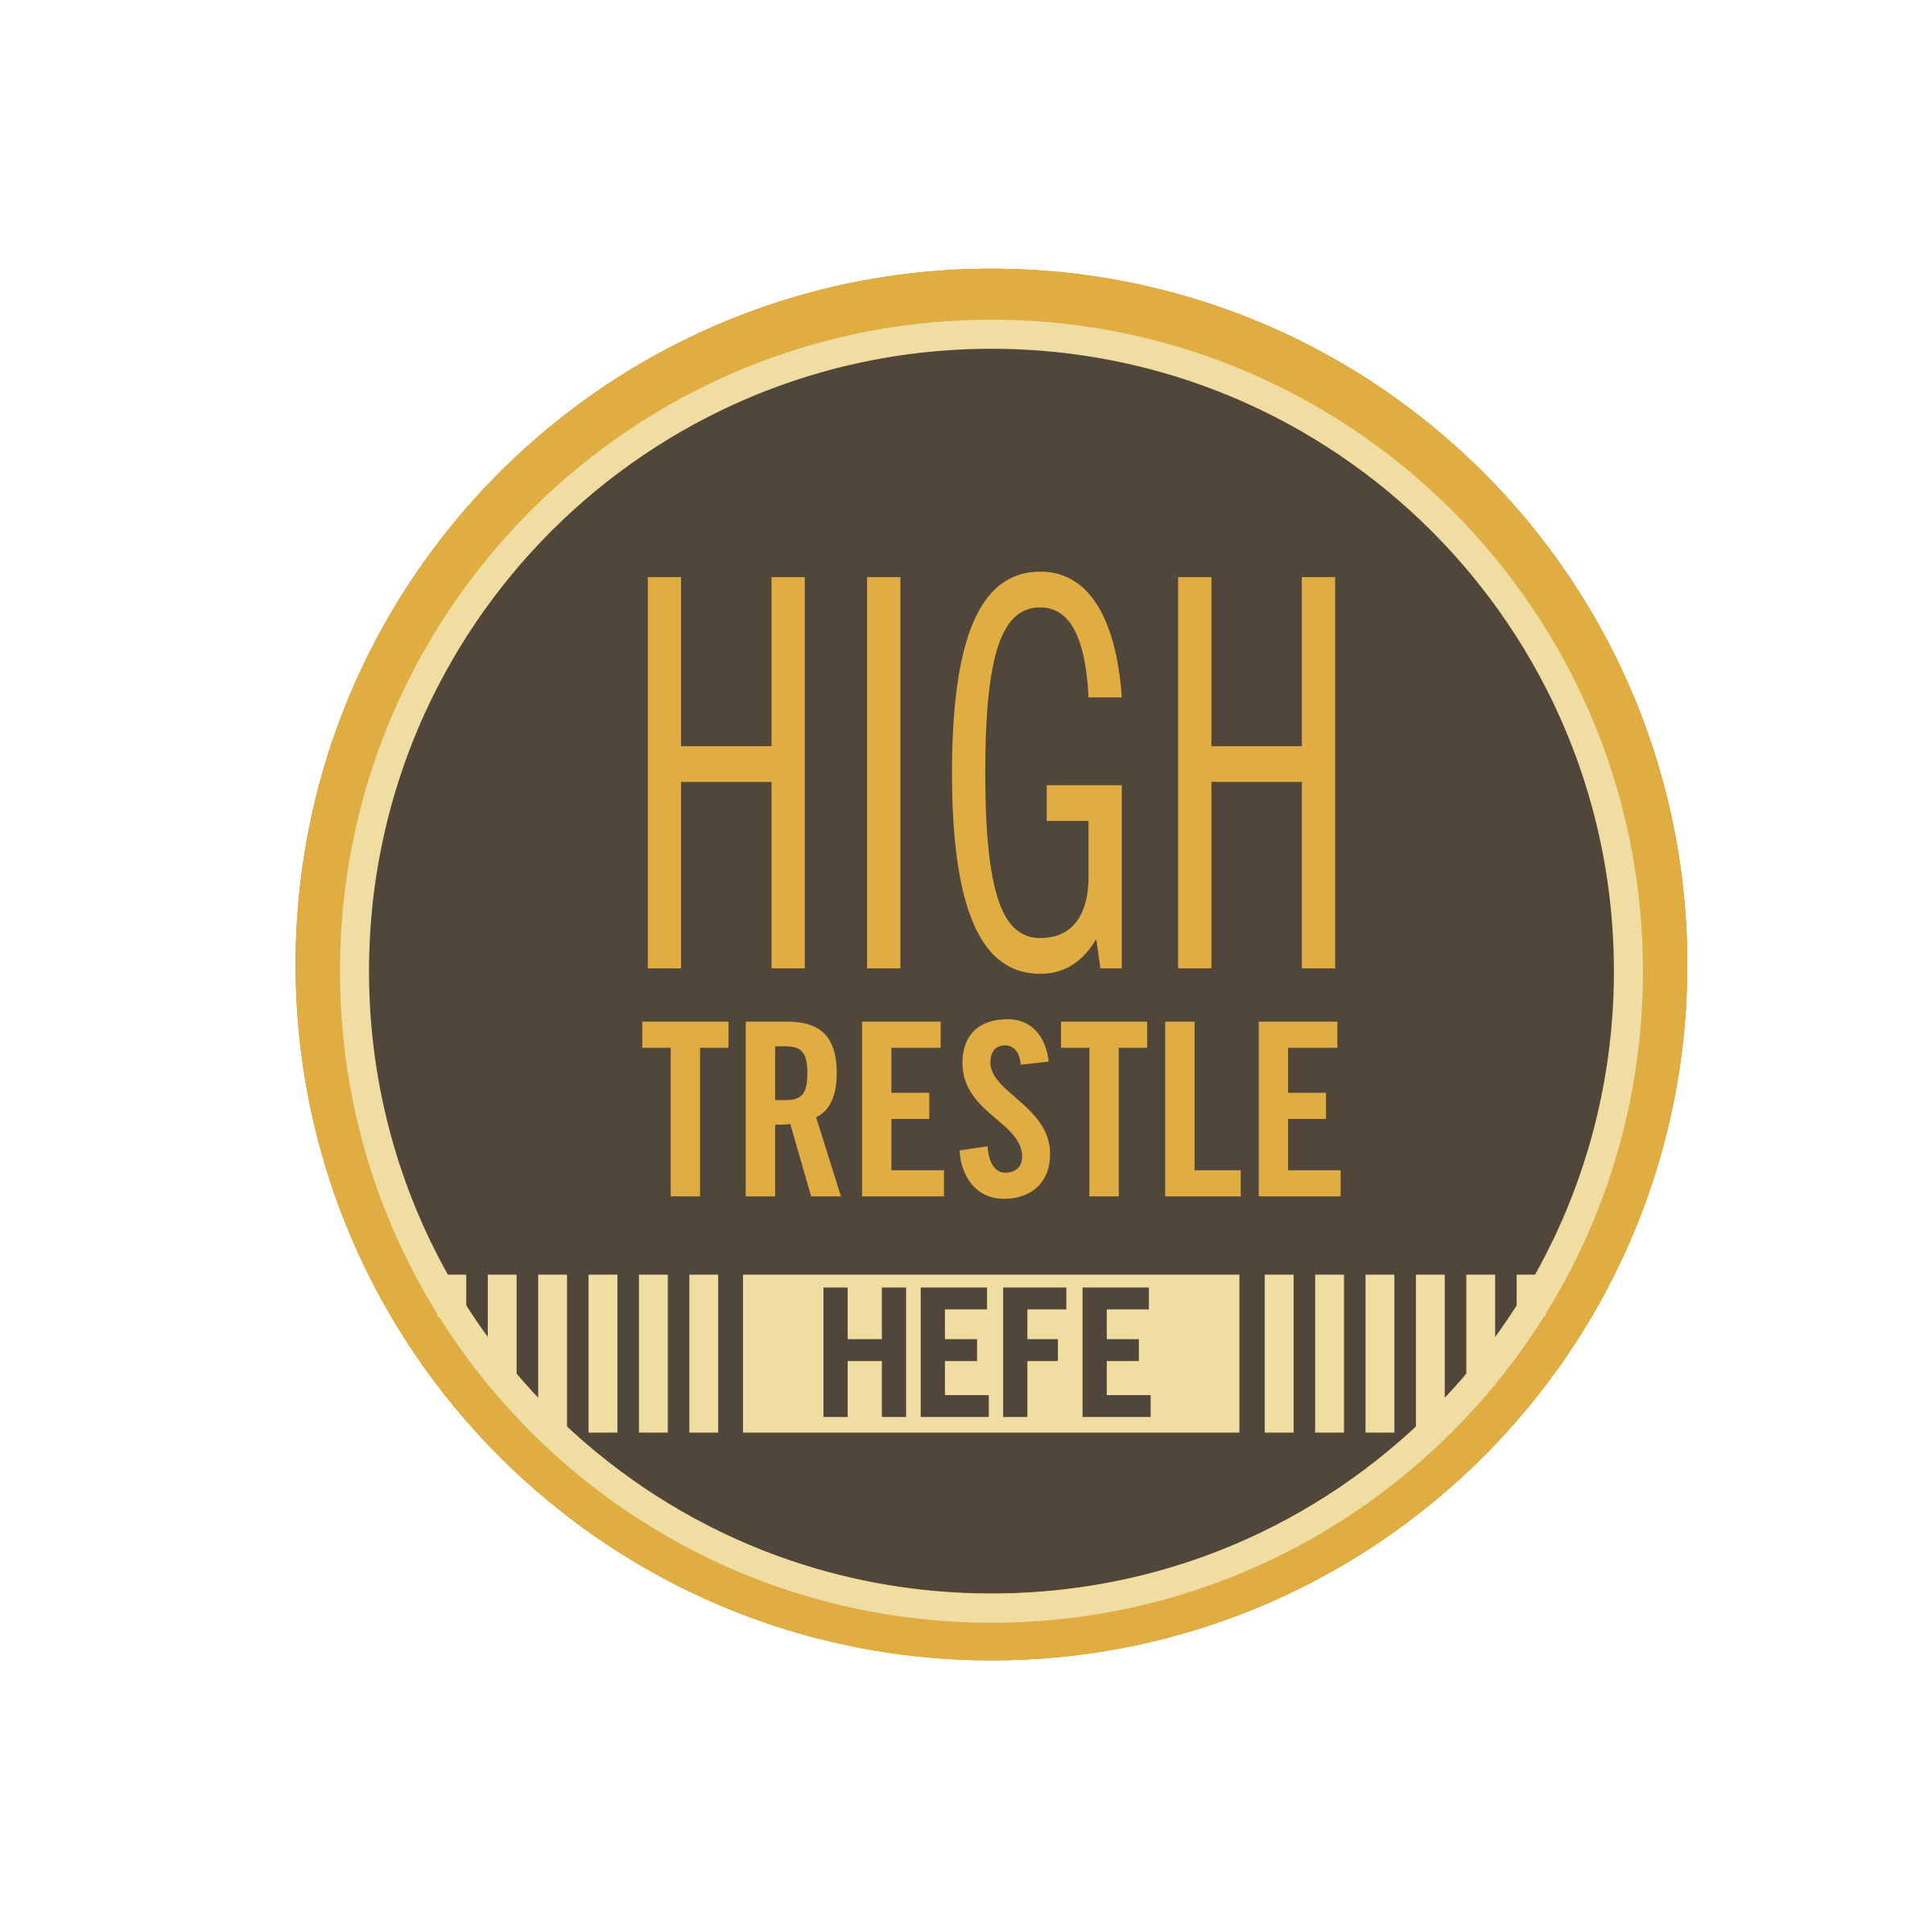 High Trestle Hefe - This German Hefeweizen is made with traditional Hefe yeast that imparts distinct banana and clove phenolics. Made with 45% wheat malt this brew is sure to quench your summer thirst!5.25% ABV - 21.7 IBUs